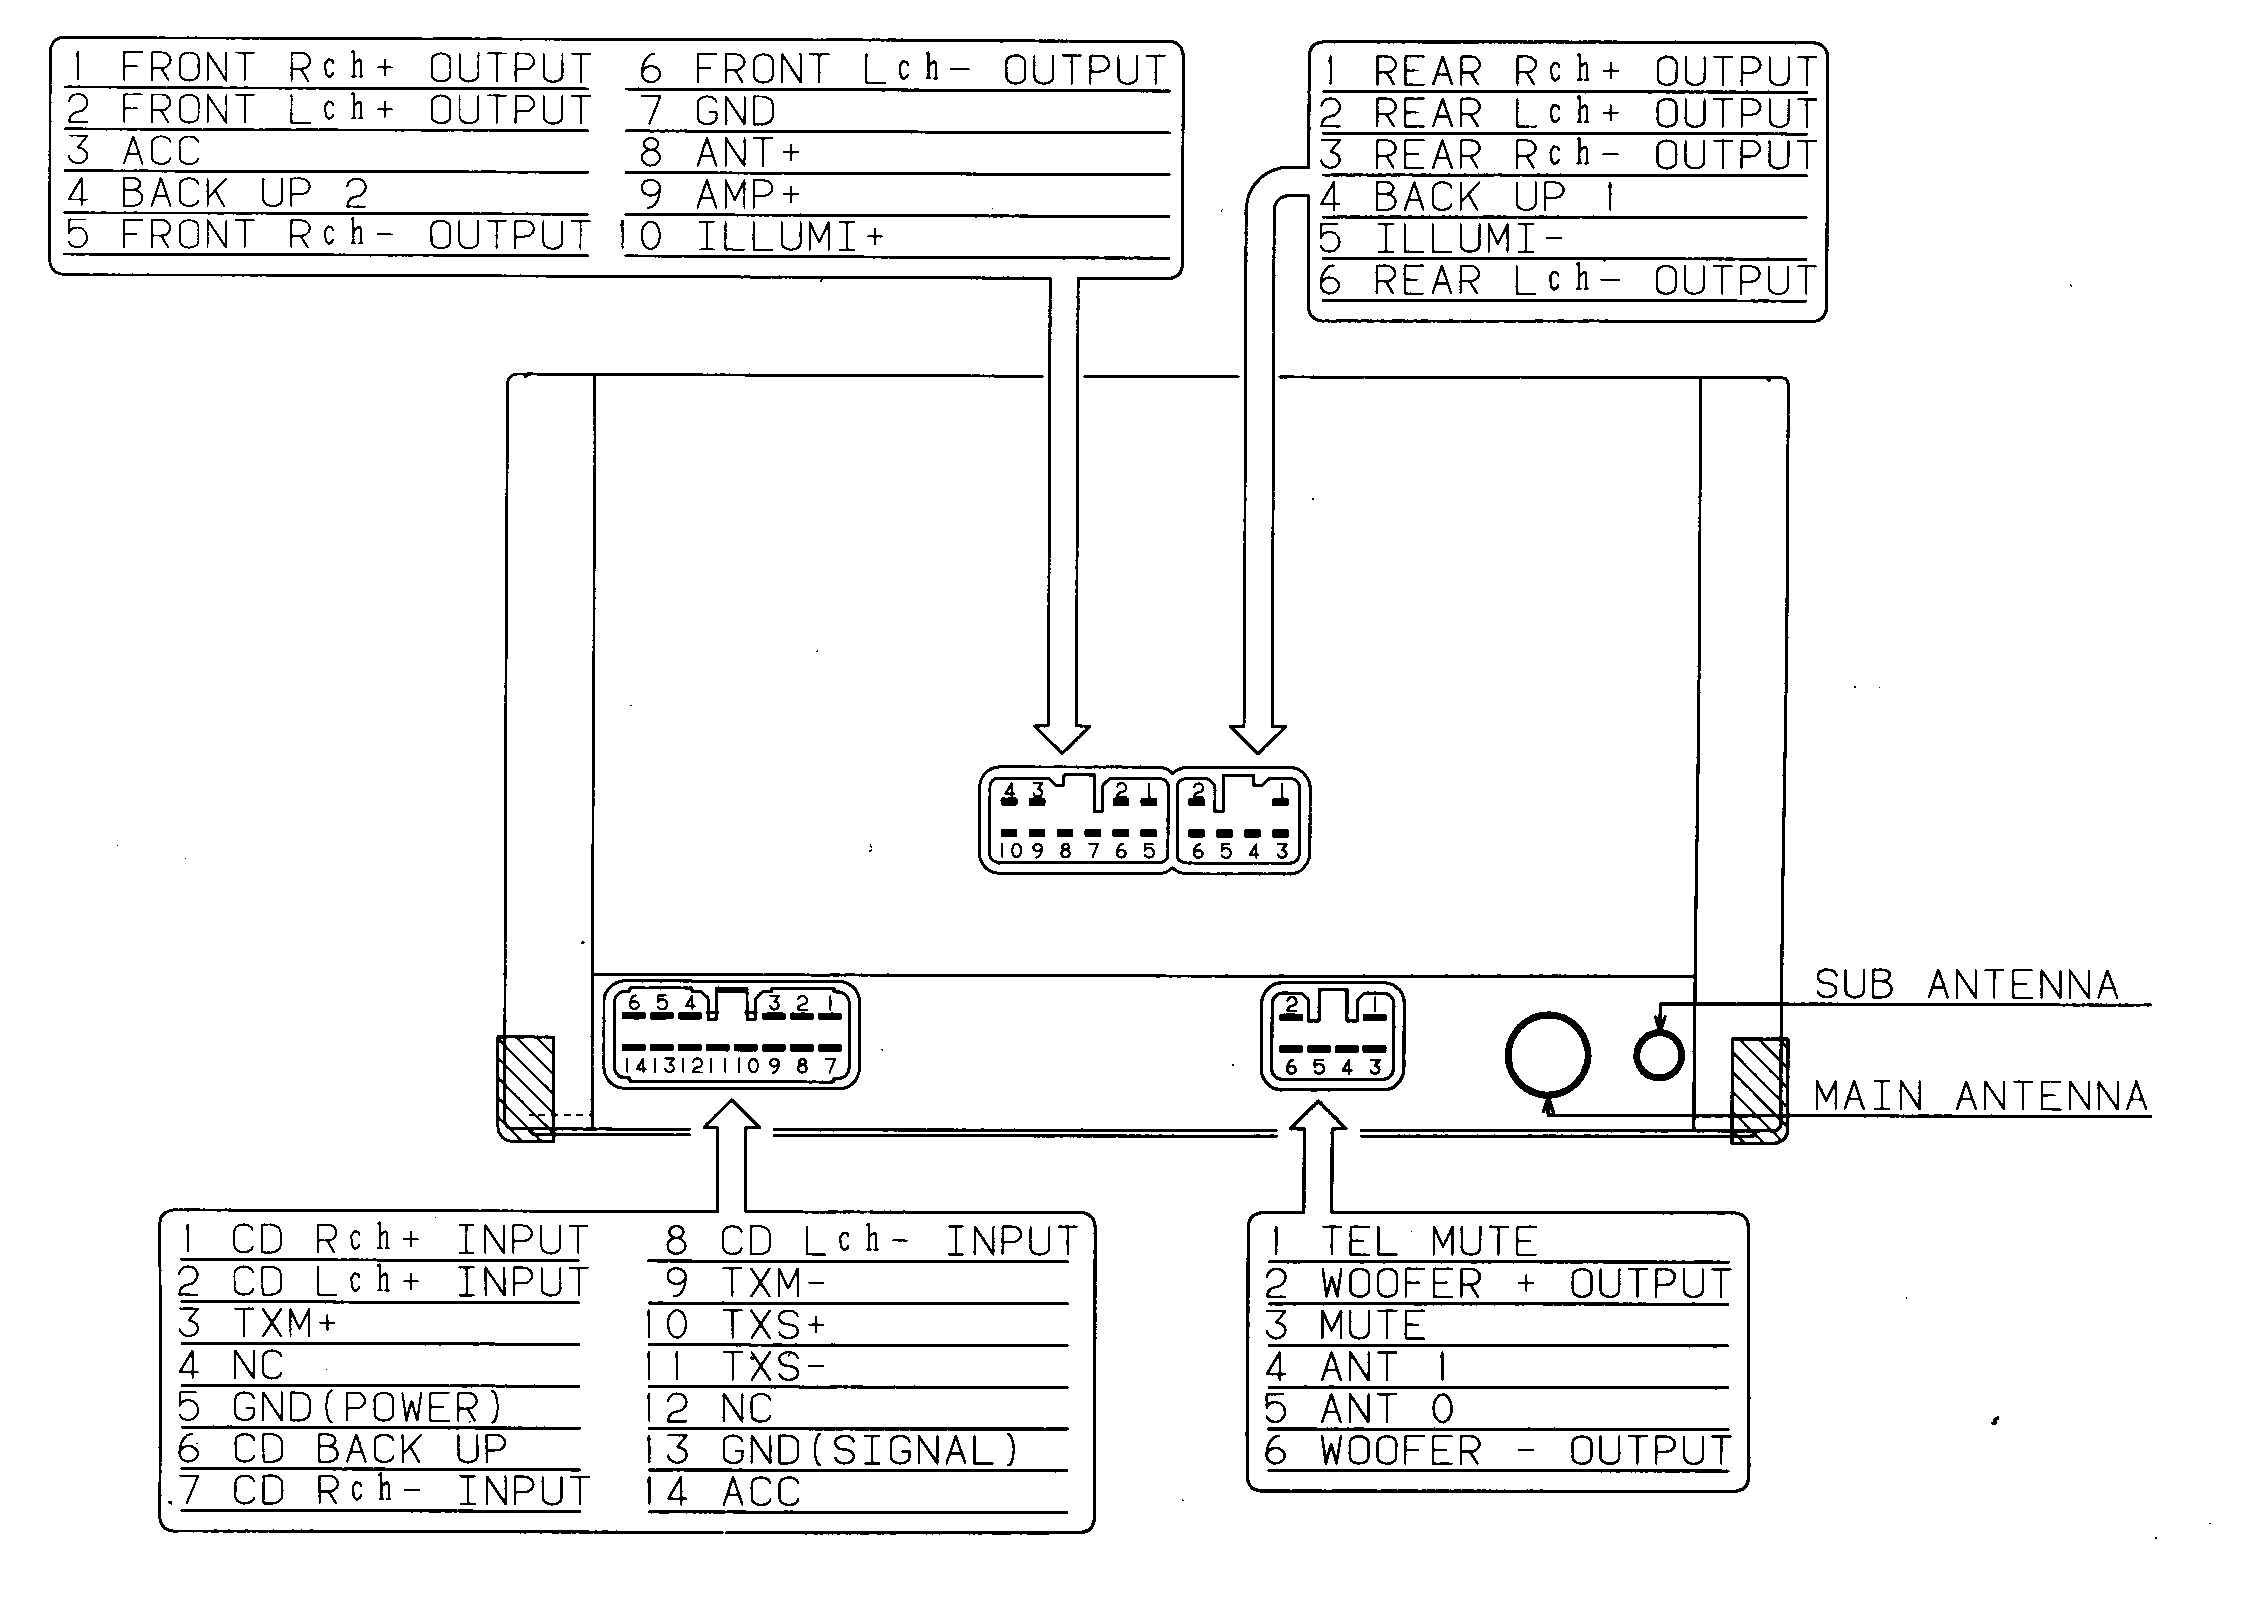 Lexus car stereo wiring diagram harness pinout connector wire lexus car radio stereo audio wiring diagram autoradio connector car stereo wiring diagrams at edmiracle.co